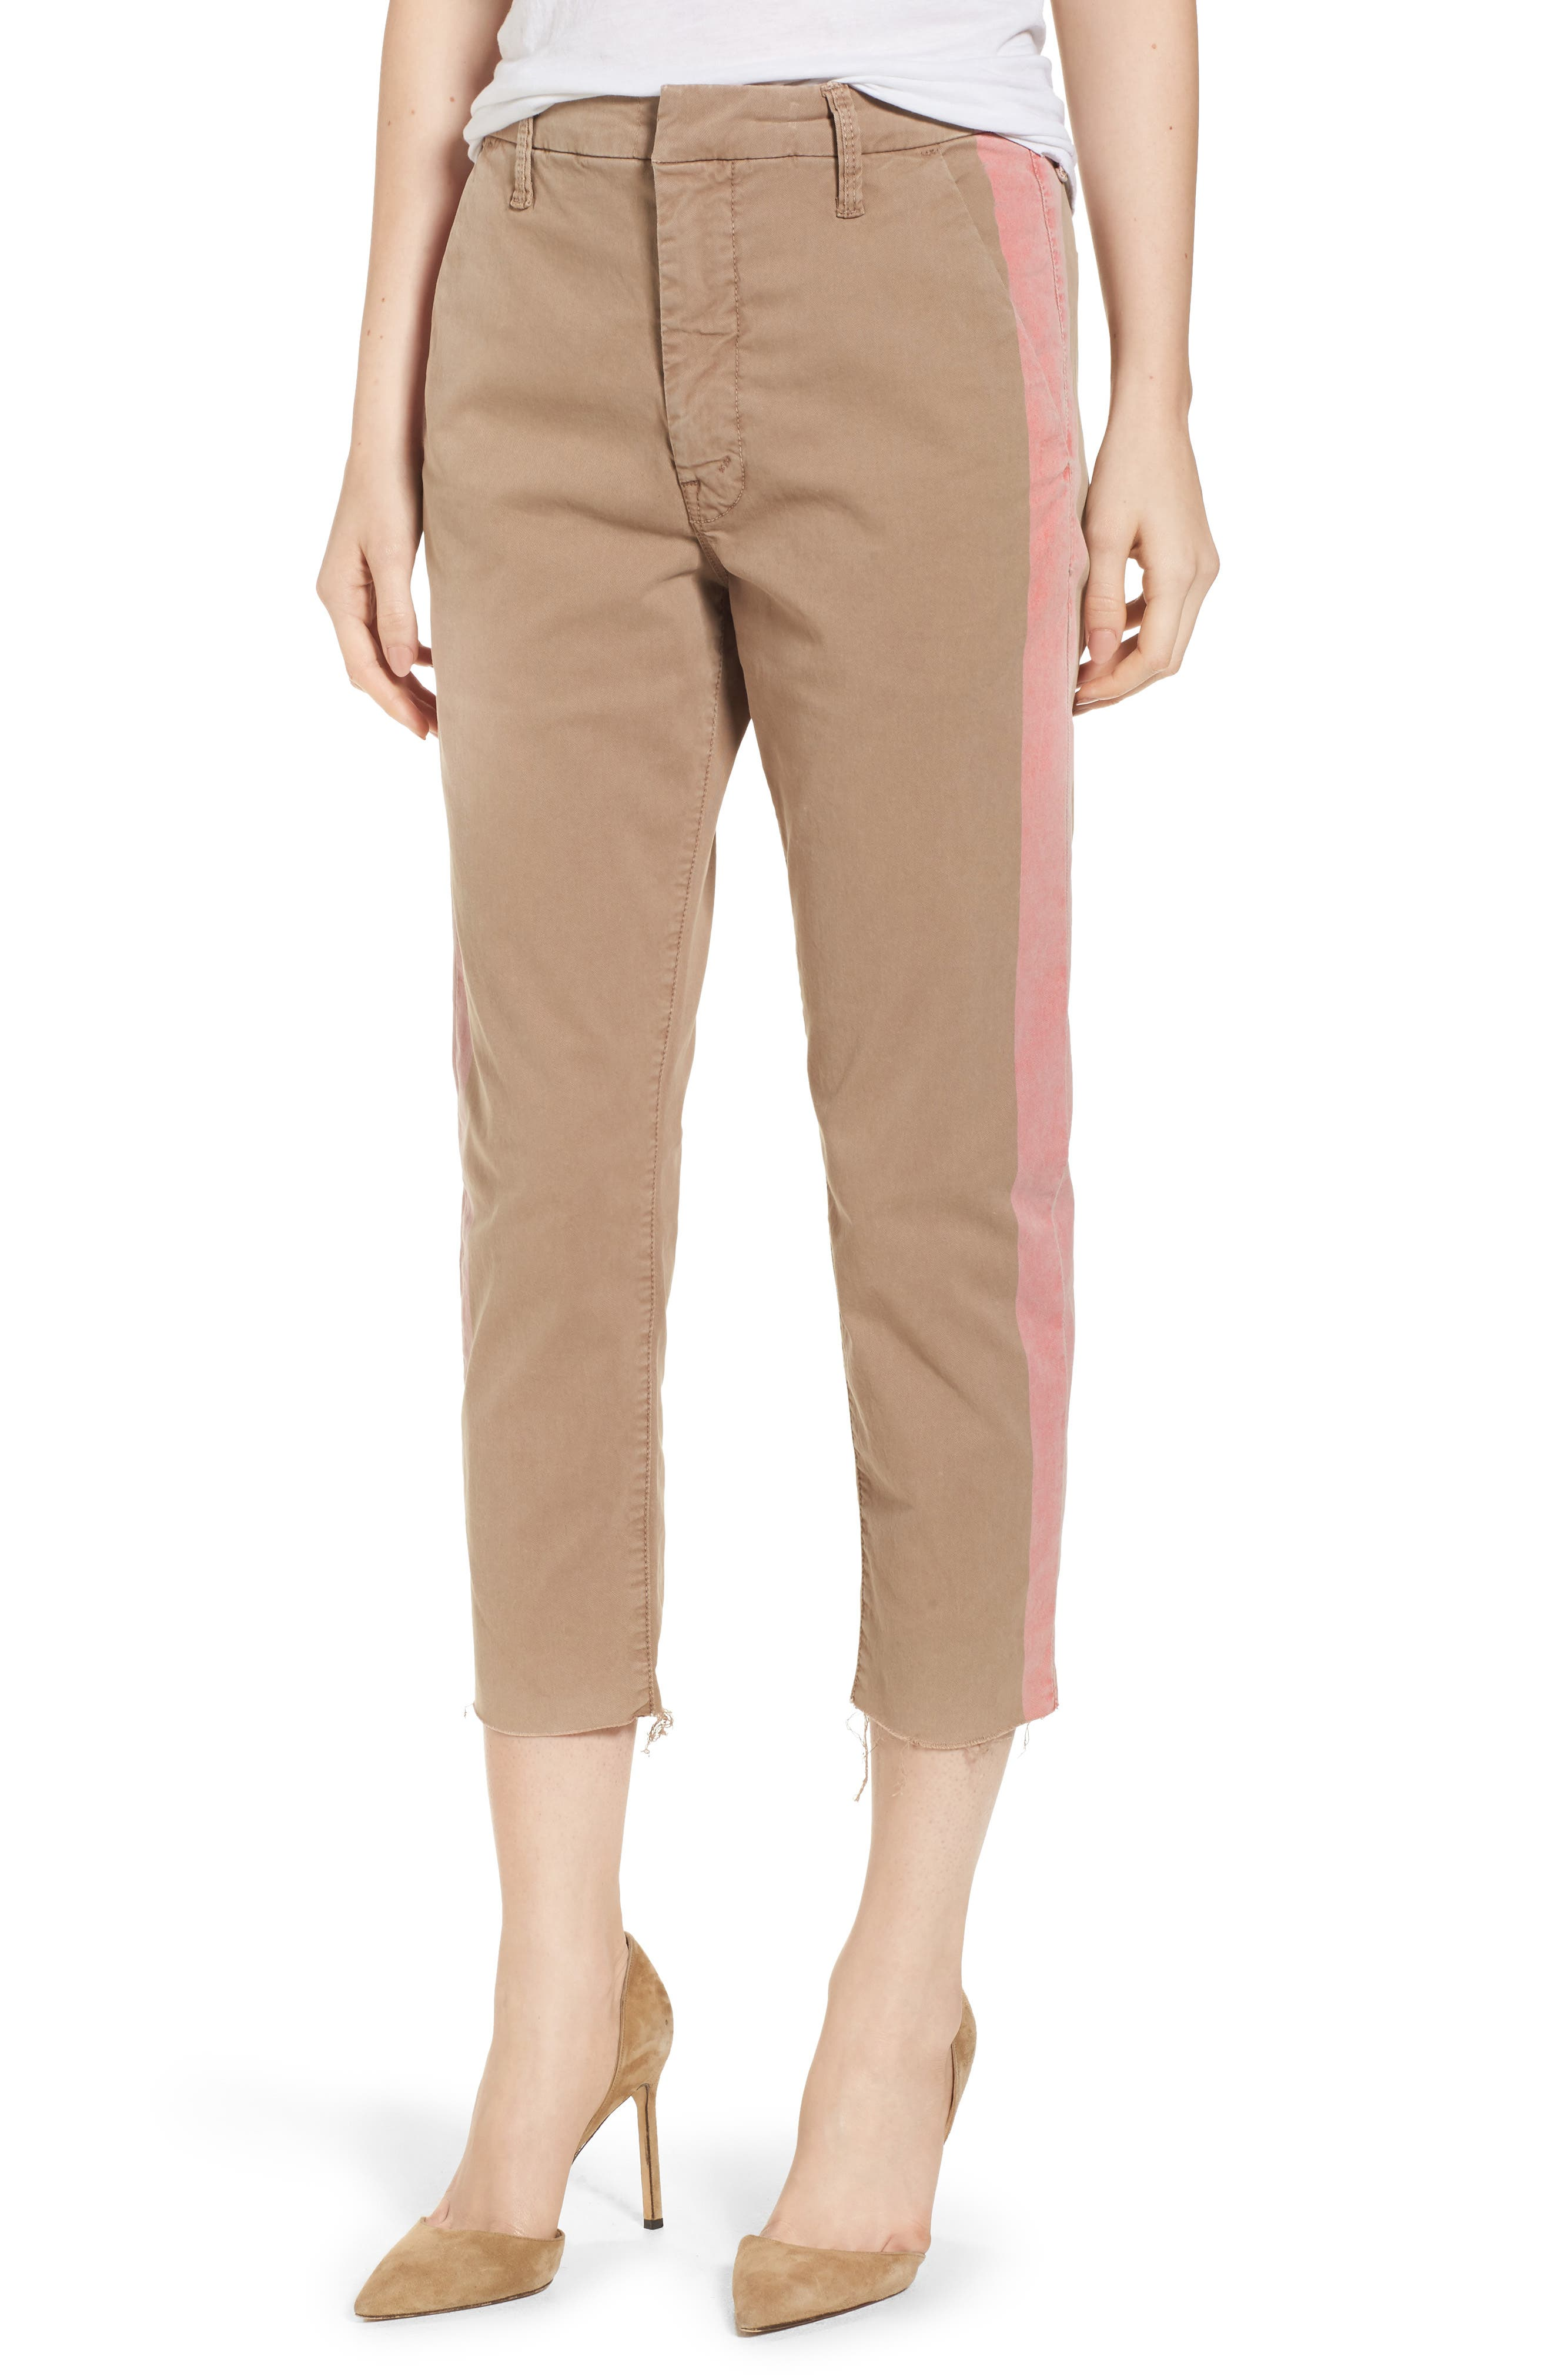 The Shaker Prep High Waist Crop Chinos,                             Main thumbnail 1, color,                             253